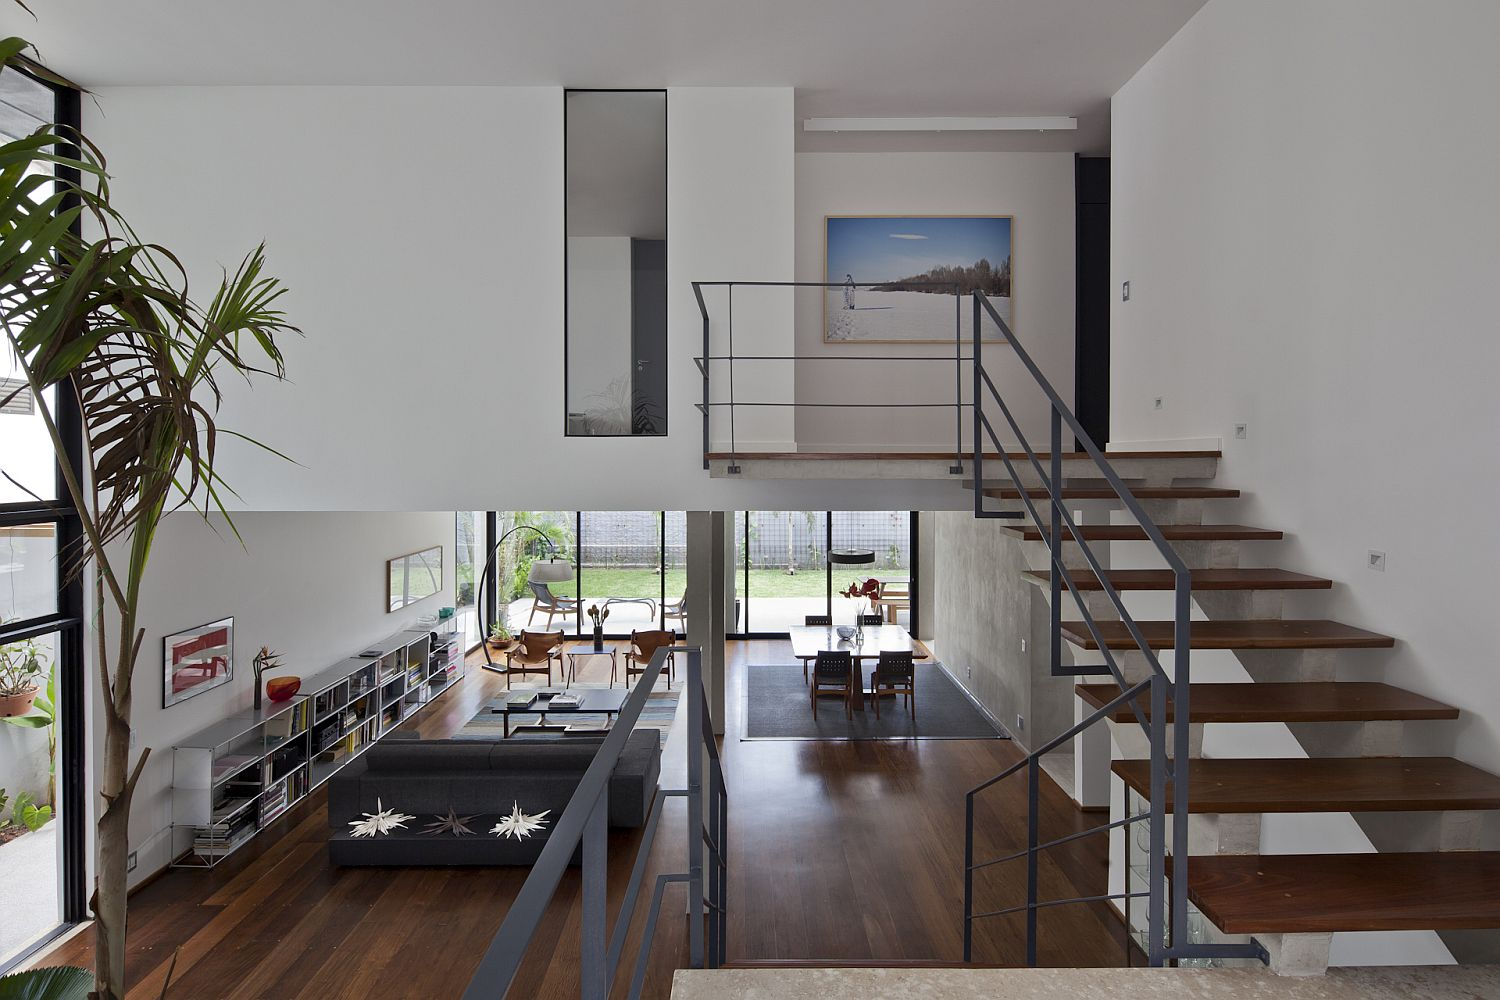 Staircase connecting the spacious living area with the bedroom